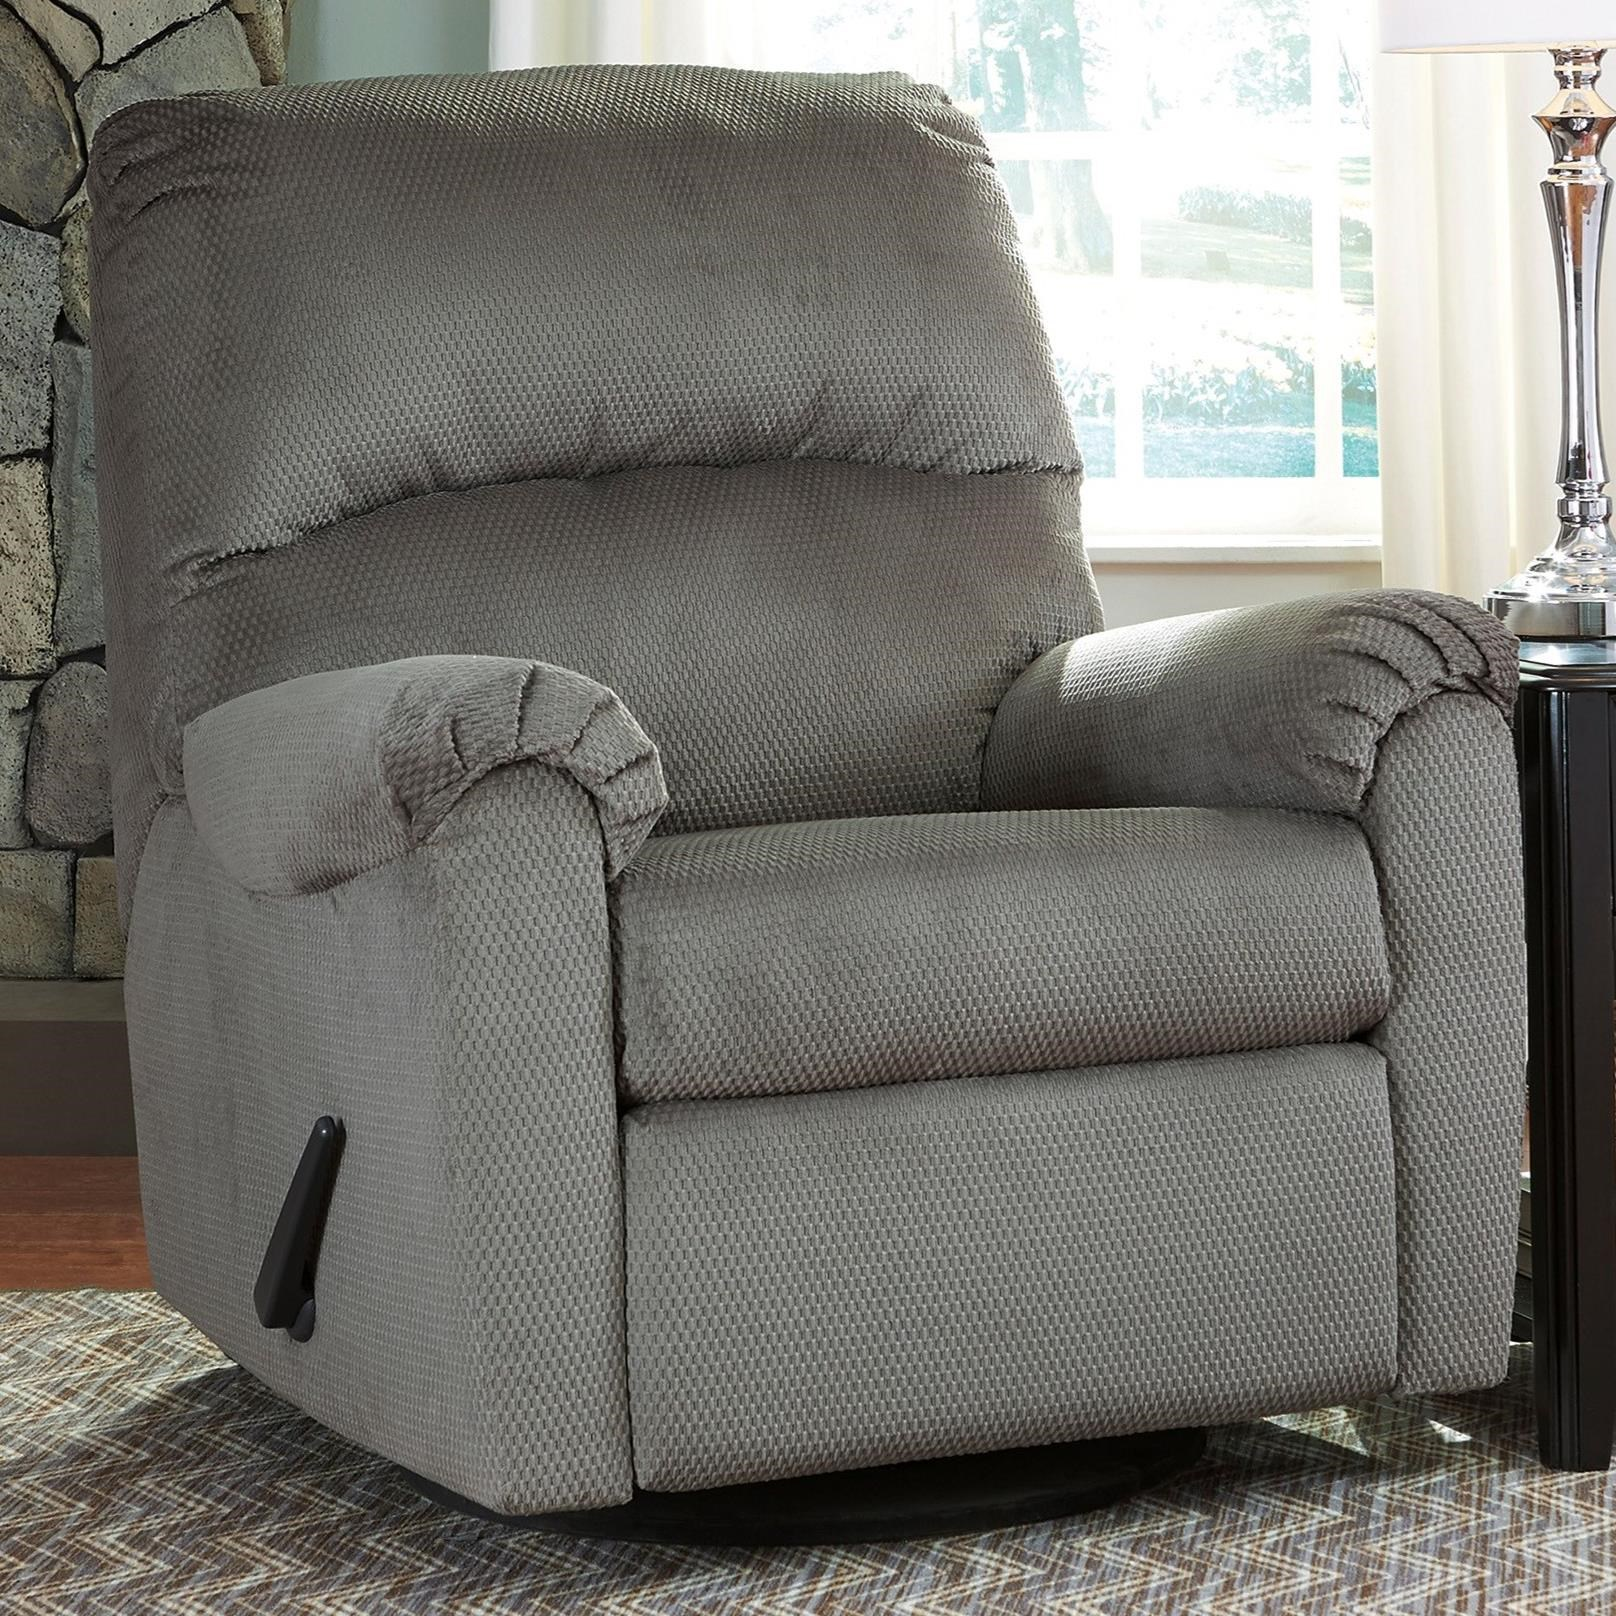 Signature Design By Ashley Bronwyn 2600261 Swivel Glider